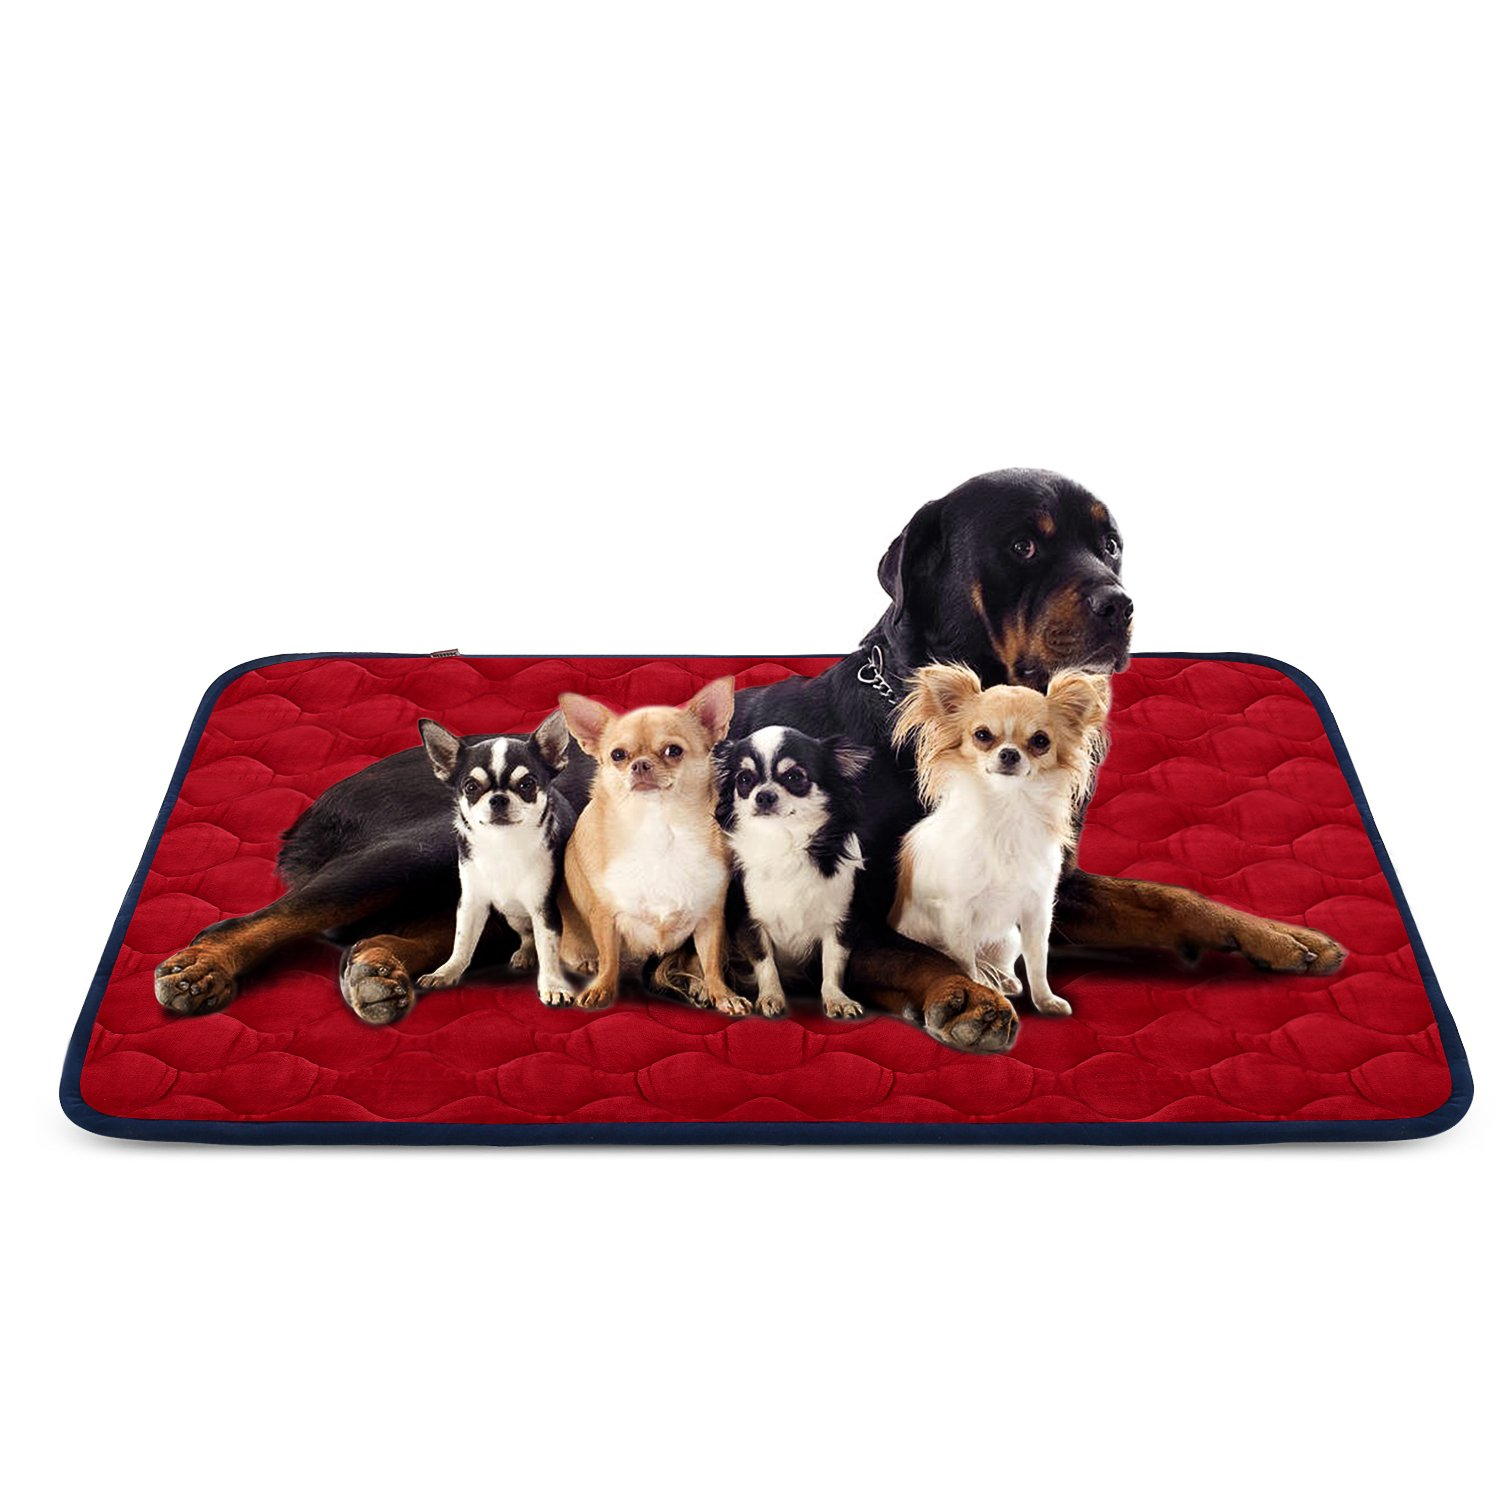 color 4 55 INHero Dog Large Dog Bed Mat 55 Inch Crate Pad Anti Slip Mattress Washable for Pets Sleeping (bluee XXL)